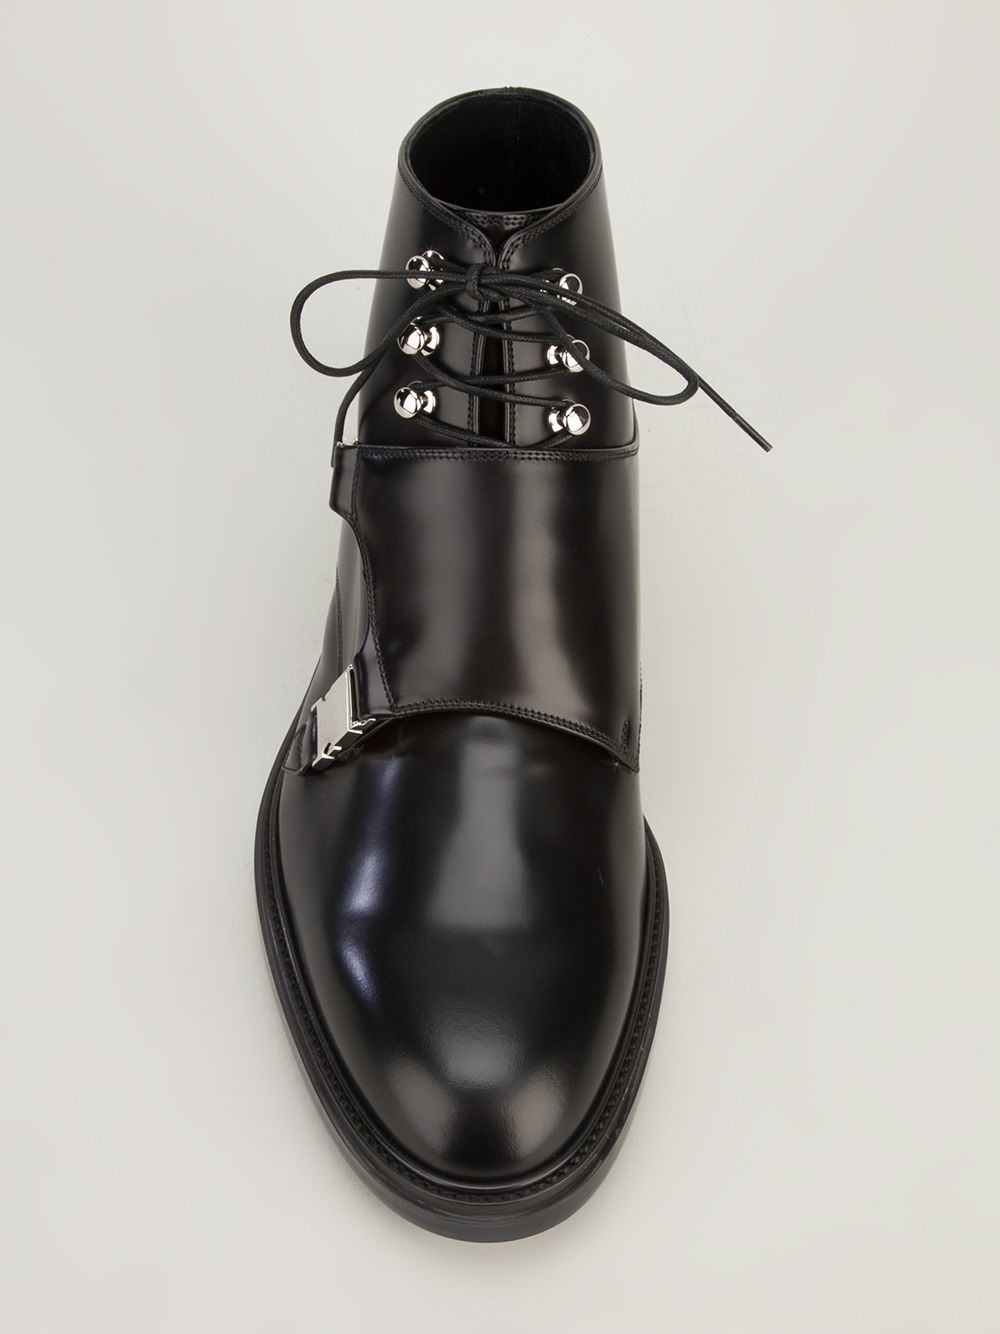 e88cae7add2 Dior Homme Lace-up Shoe. Vestimenta Gótica